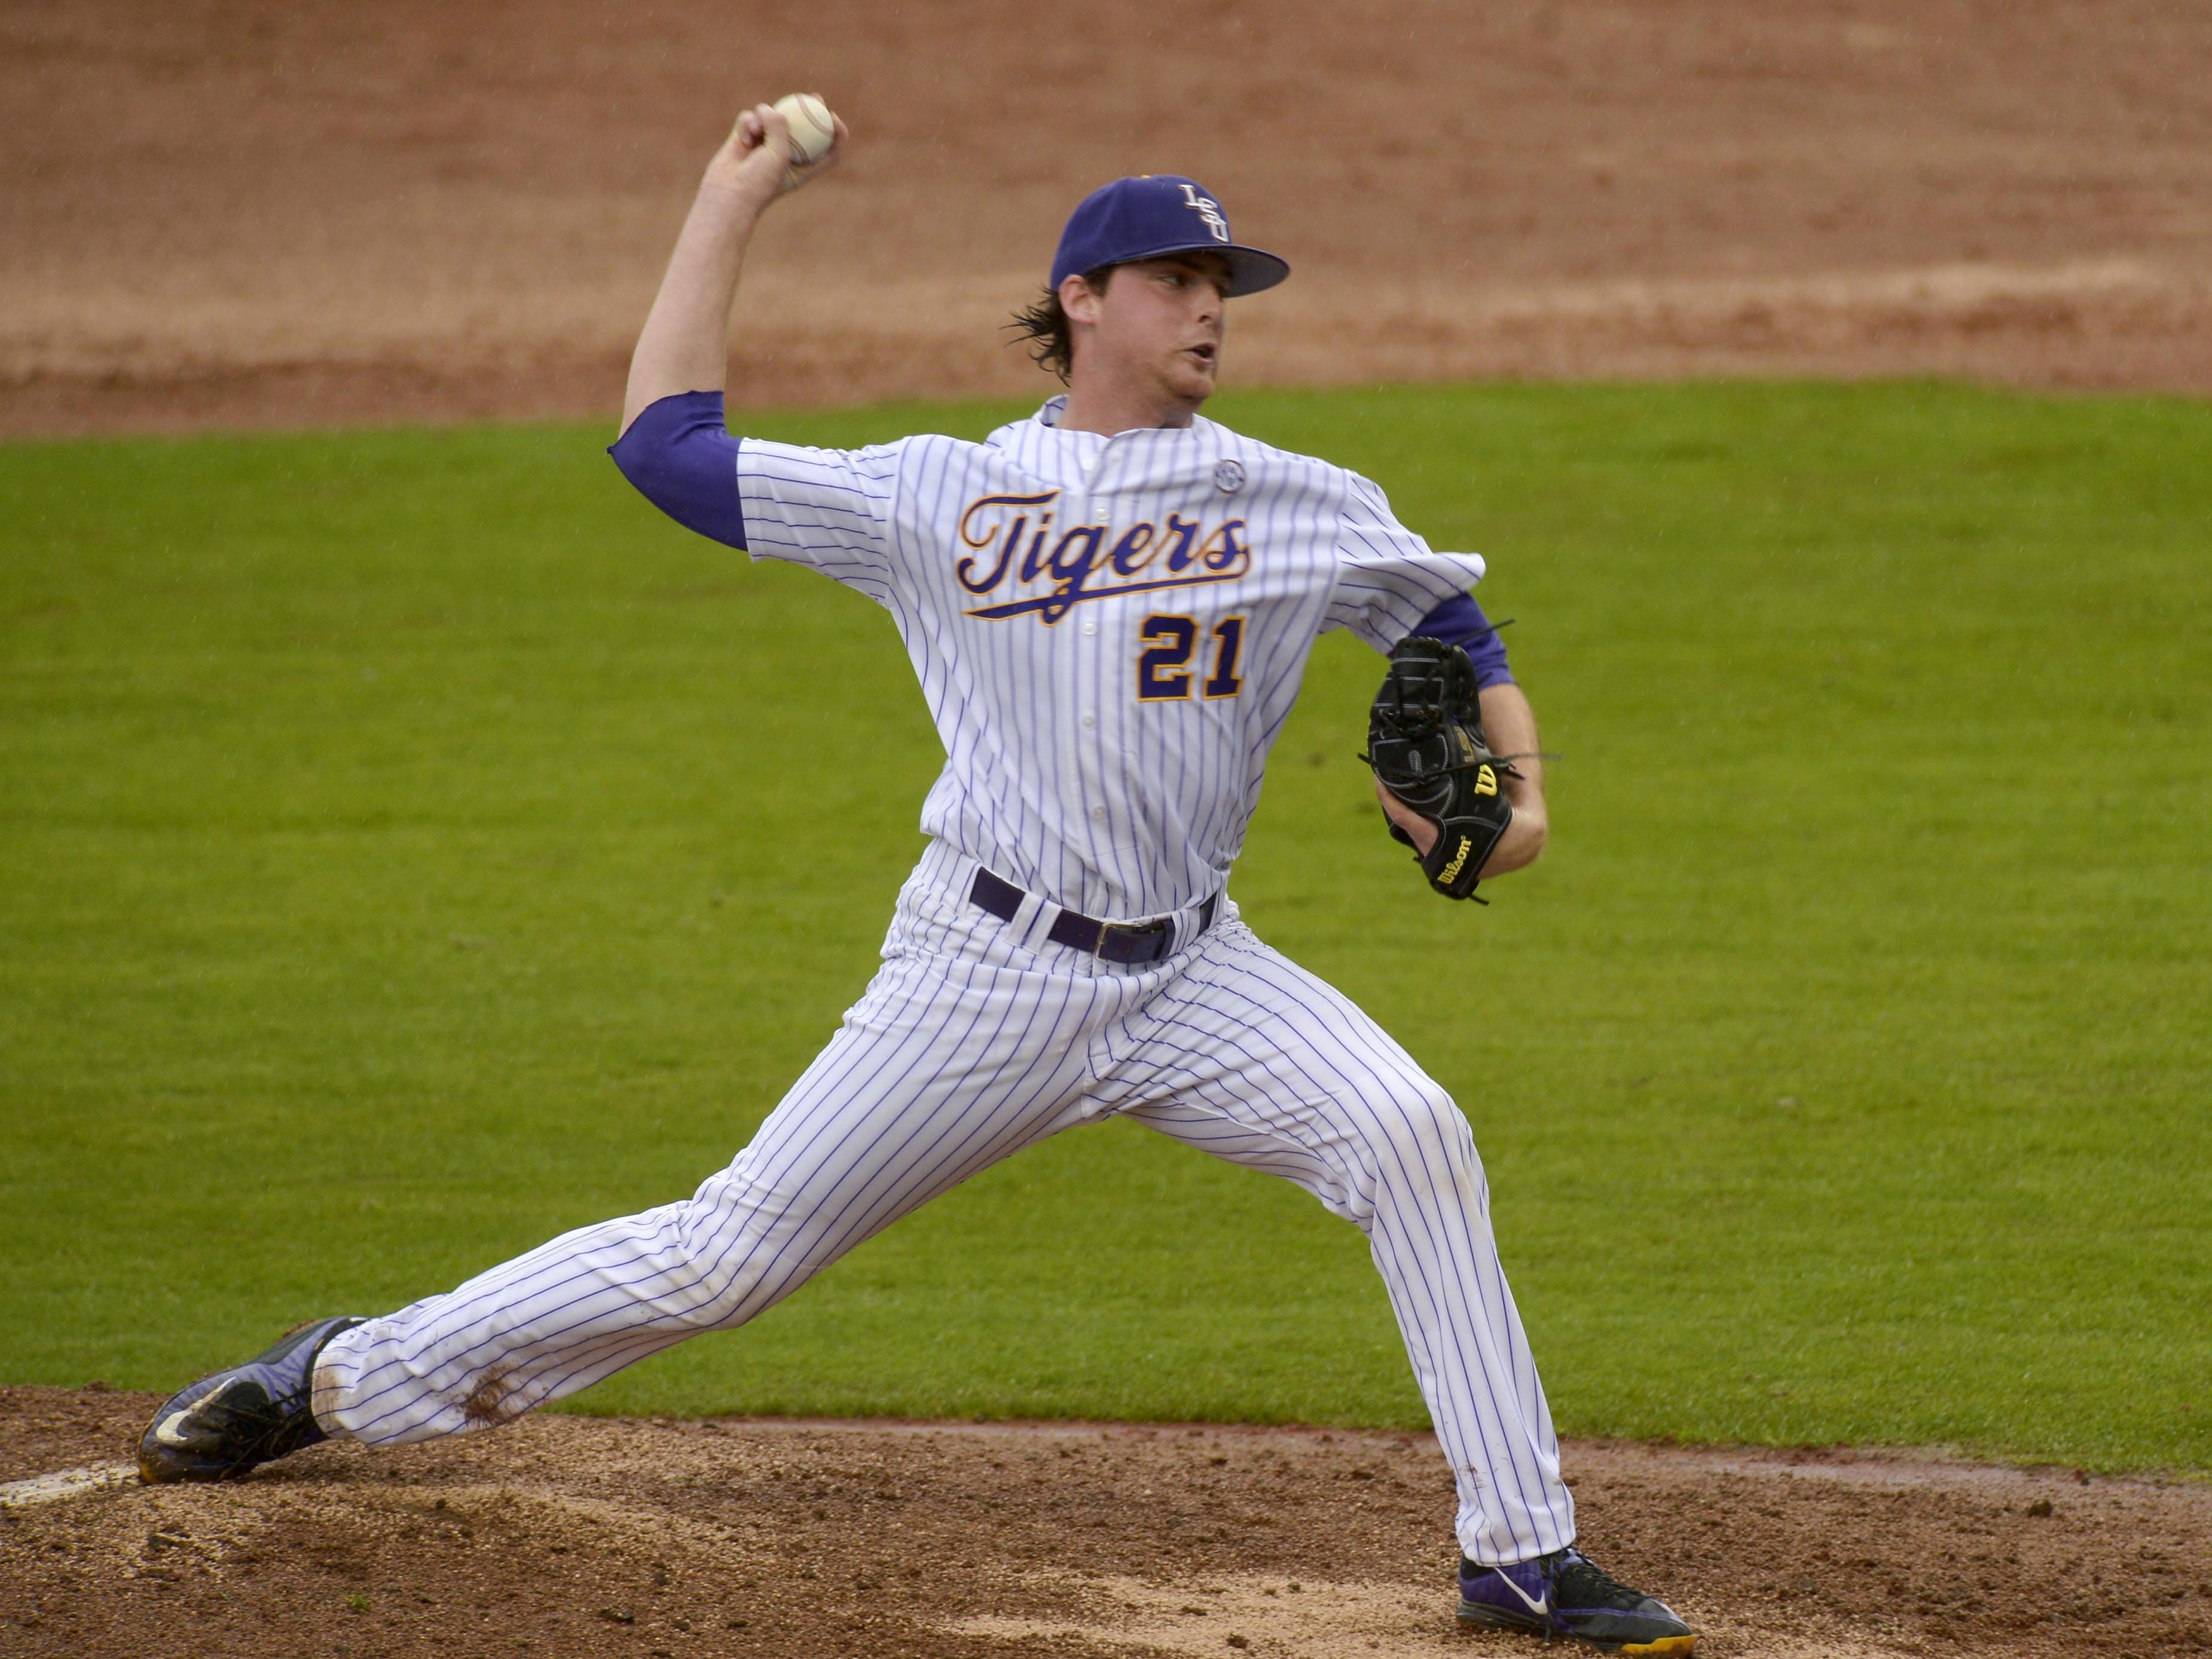 The Cincinnati Reds drafted LSU pitcher Doug Norman on Wednesday.